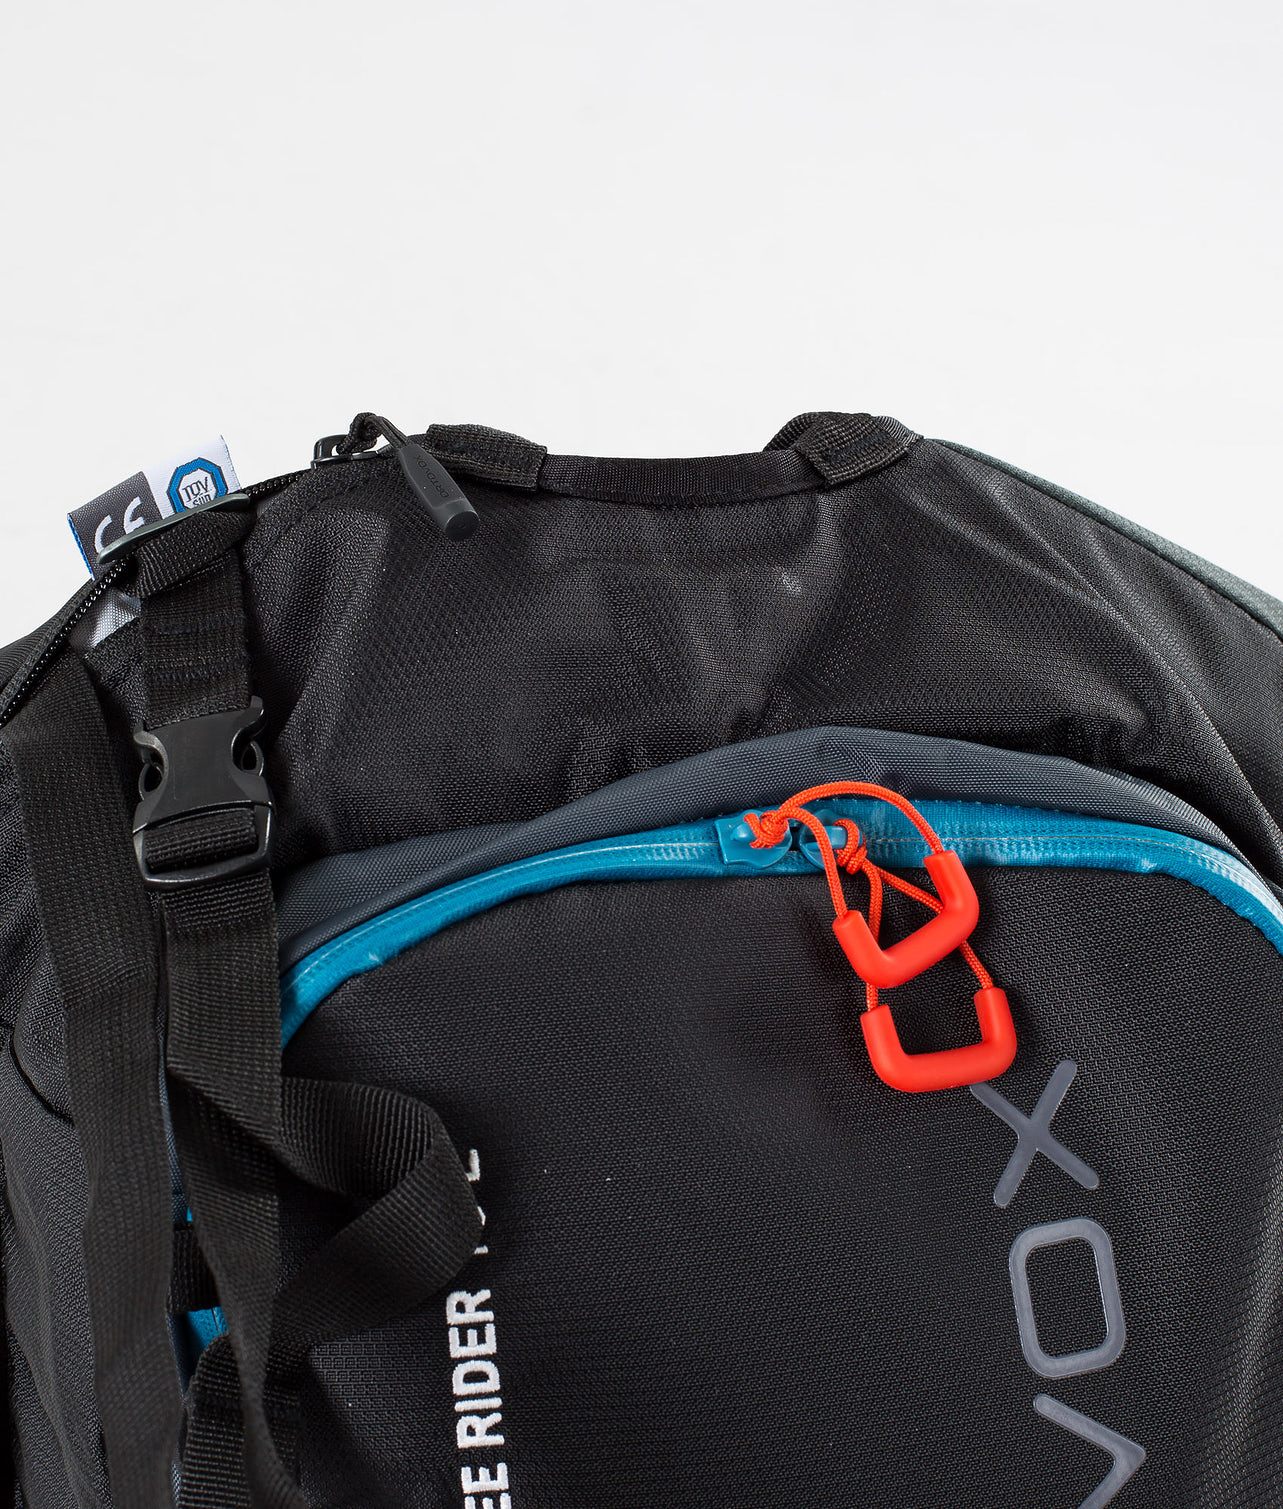 Buy Free Rider 16 Snow Bag from Ortovox at Ridestore.com - Always free shipping, free returns and 30 days money back guarantee